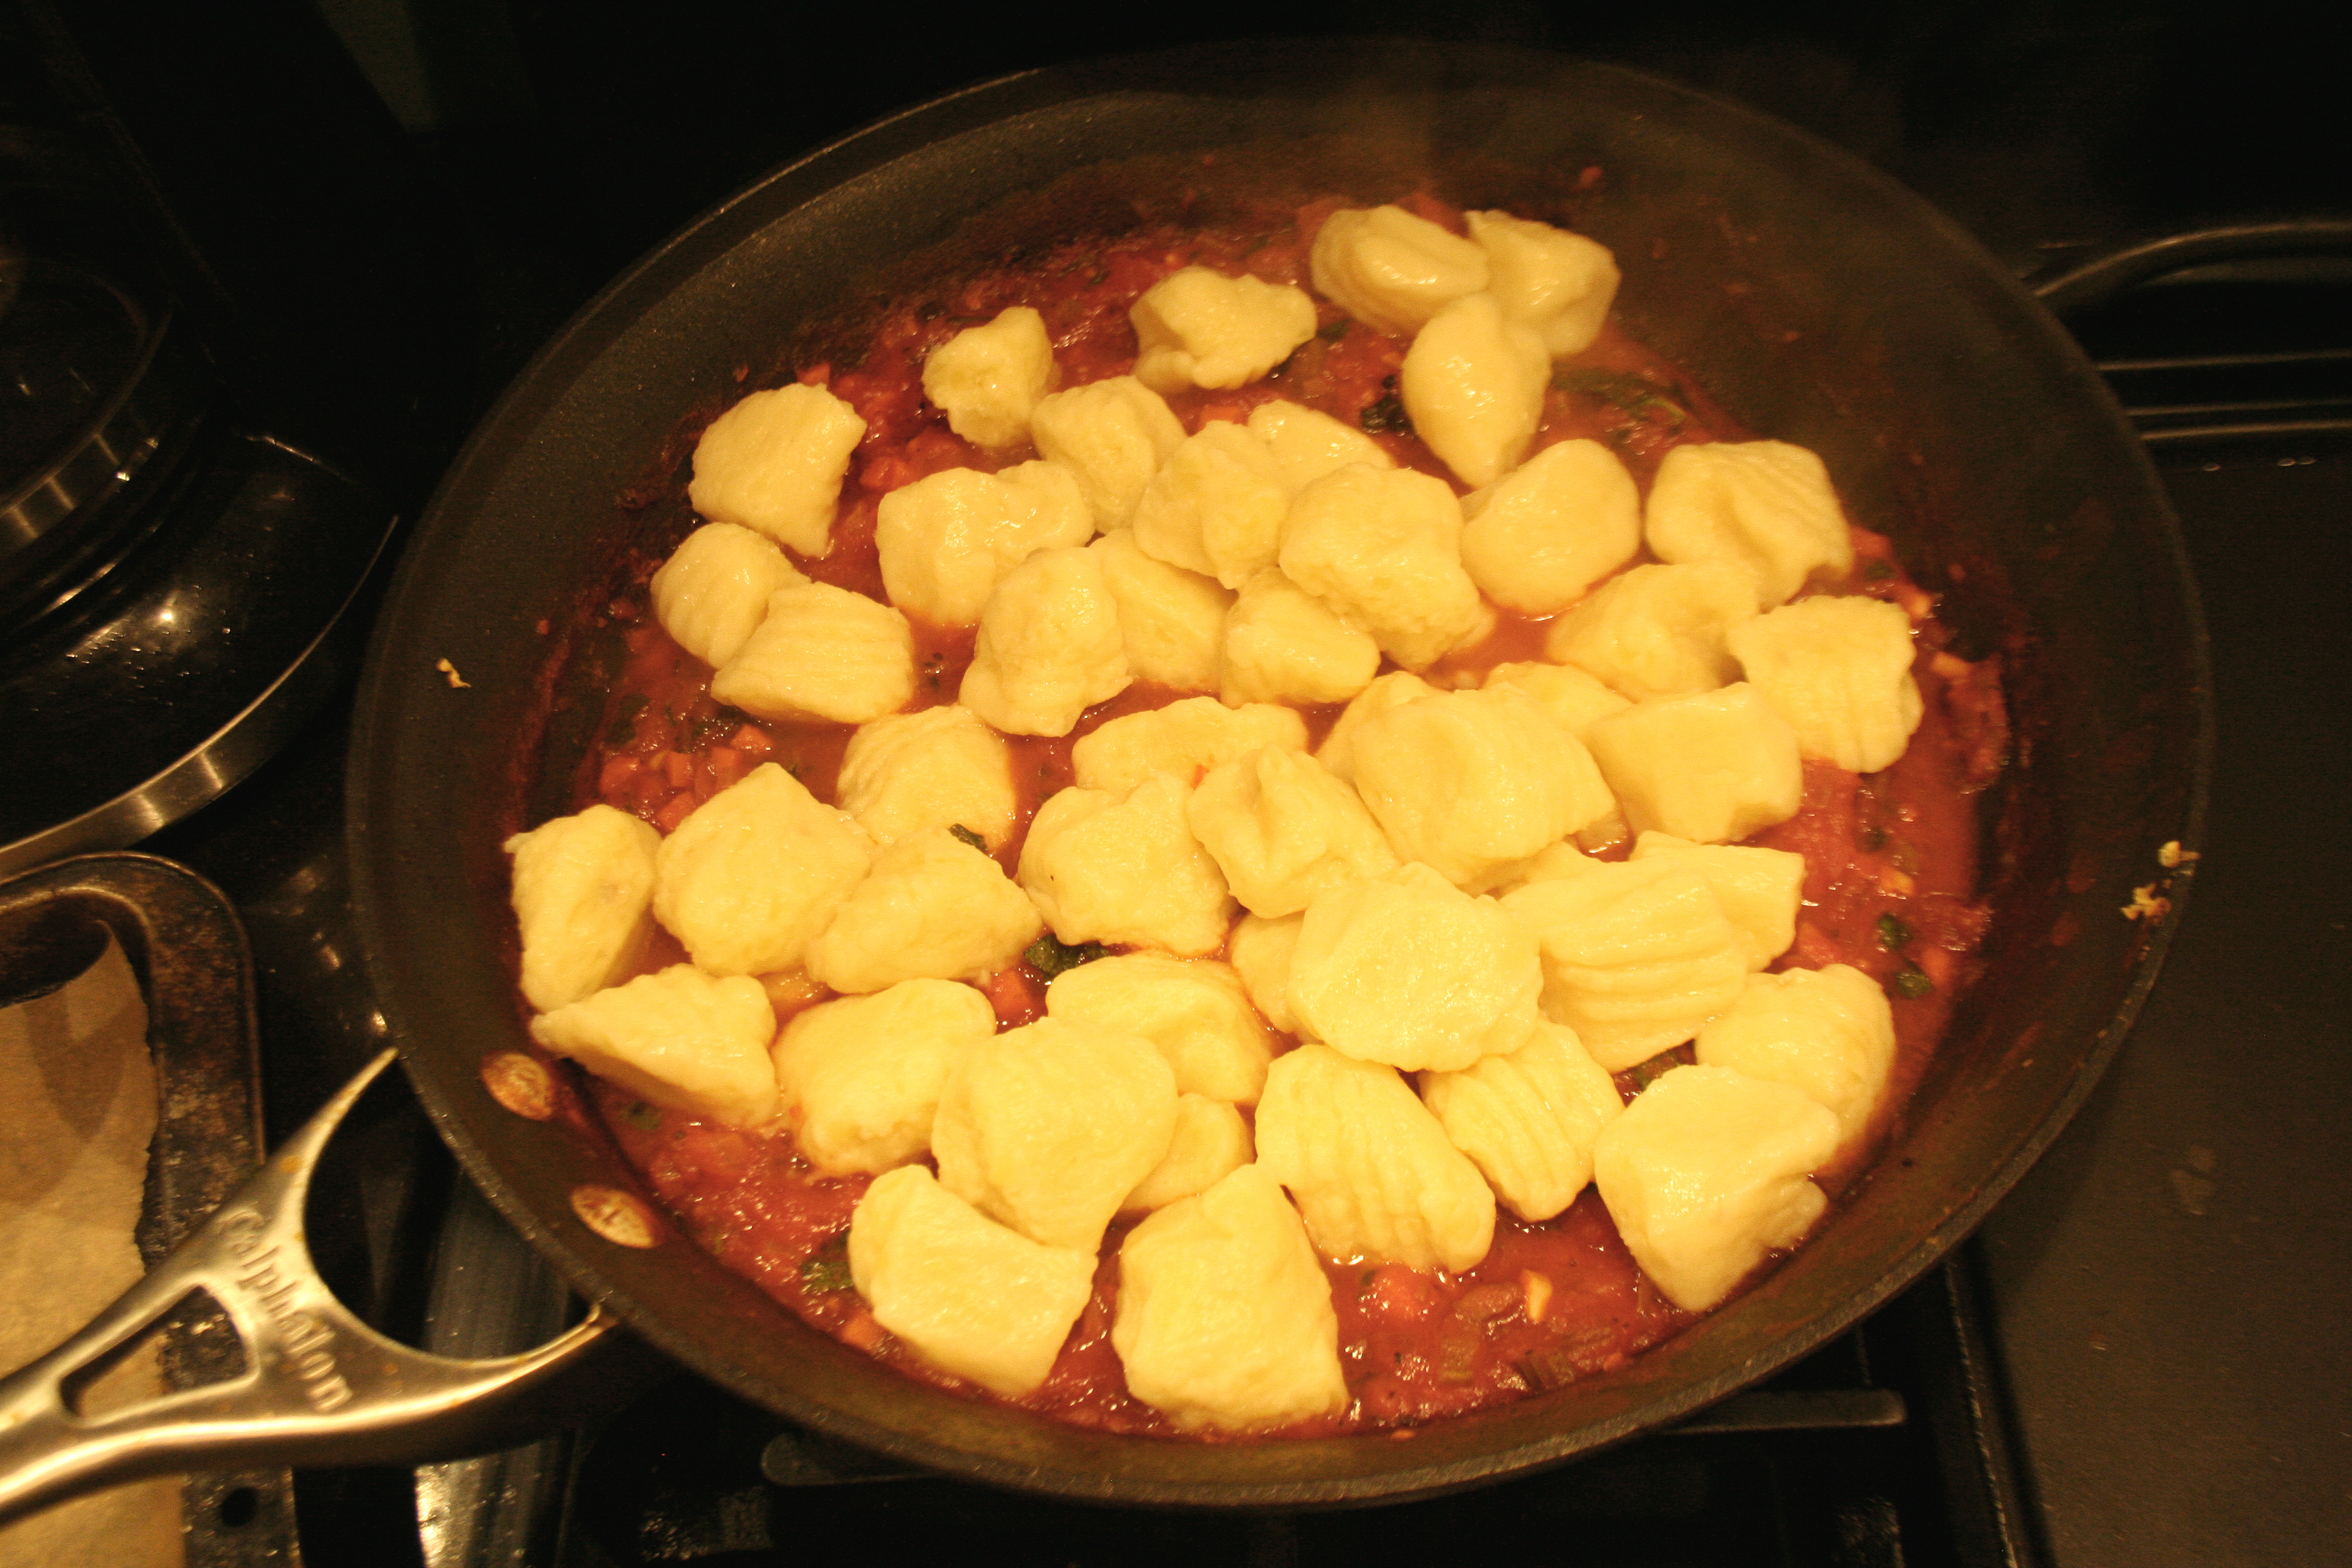 Cooked potato gnocchi tossed into the tomato sauce pan